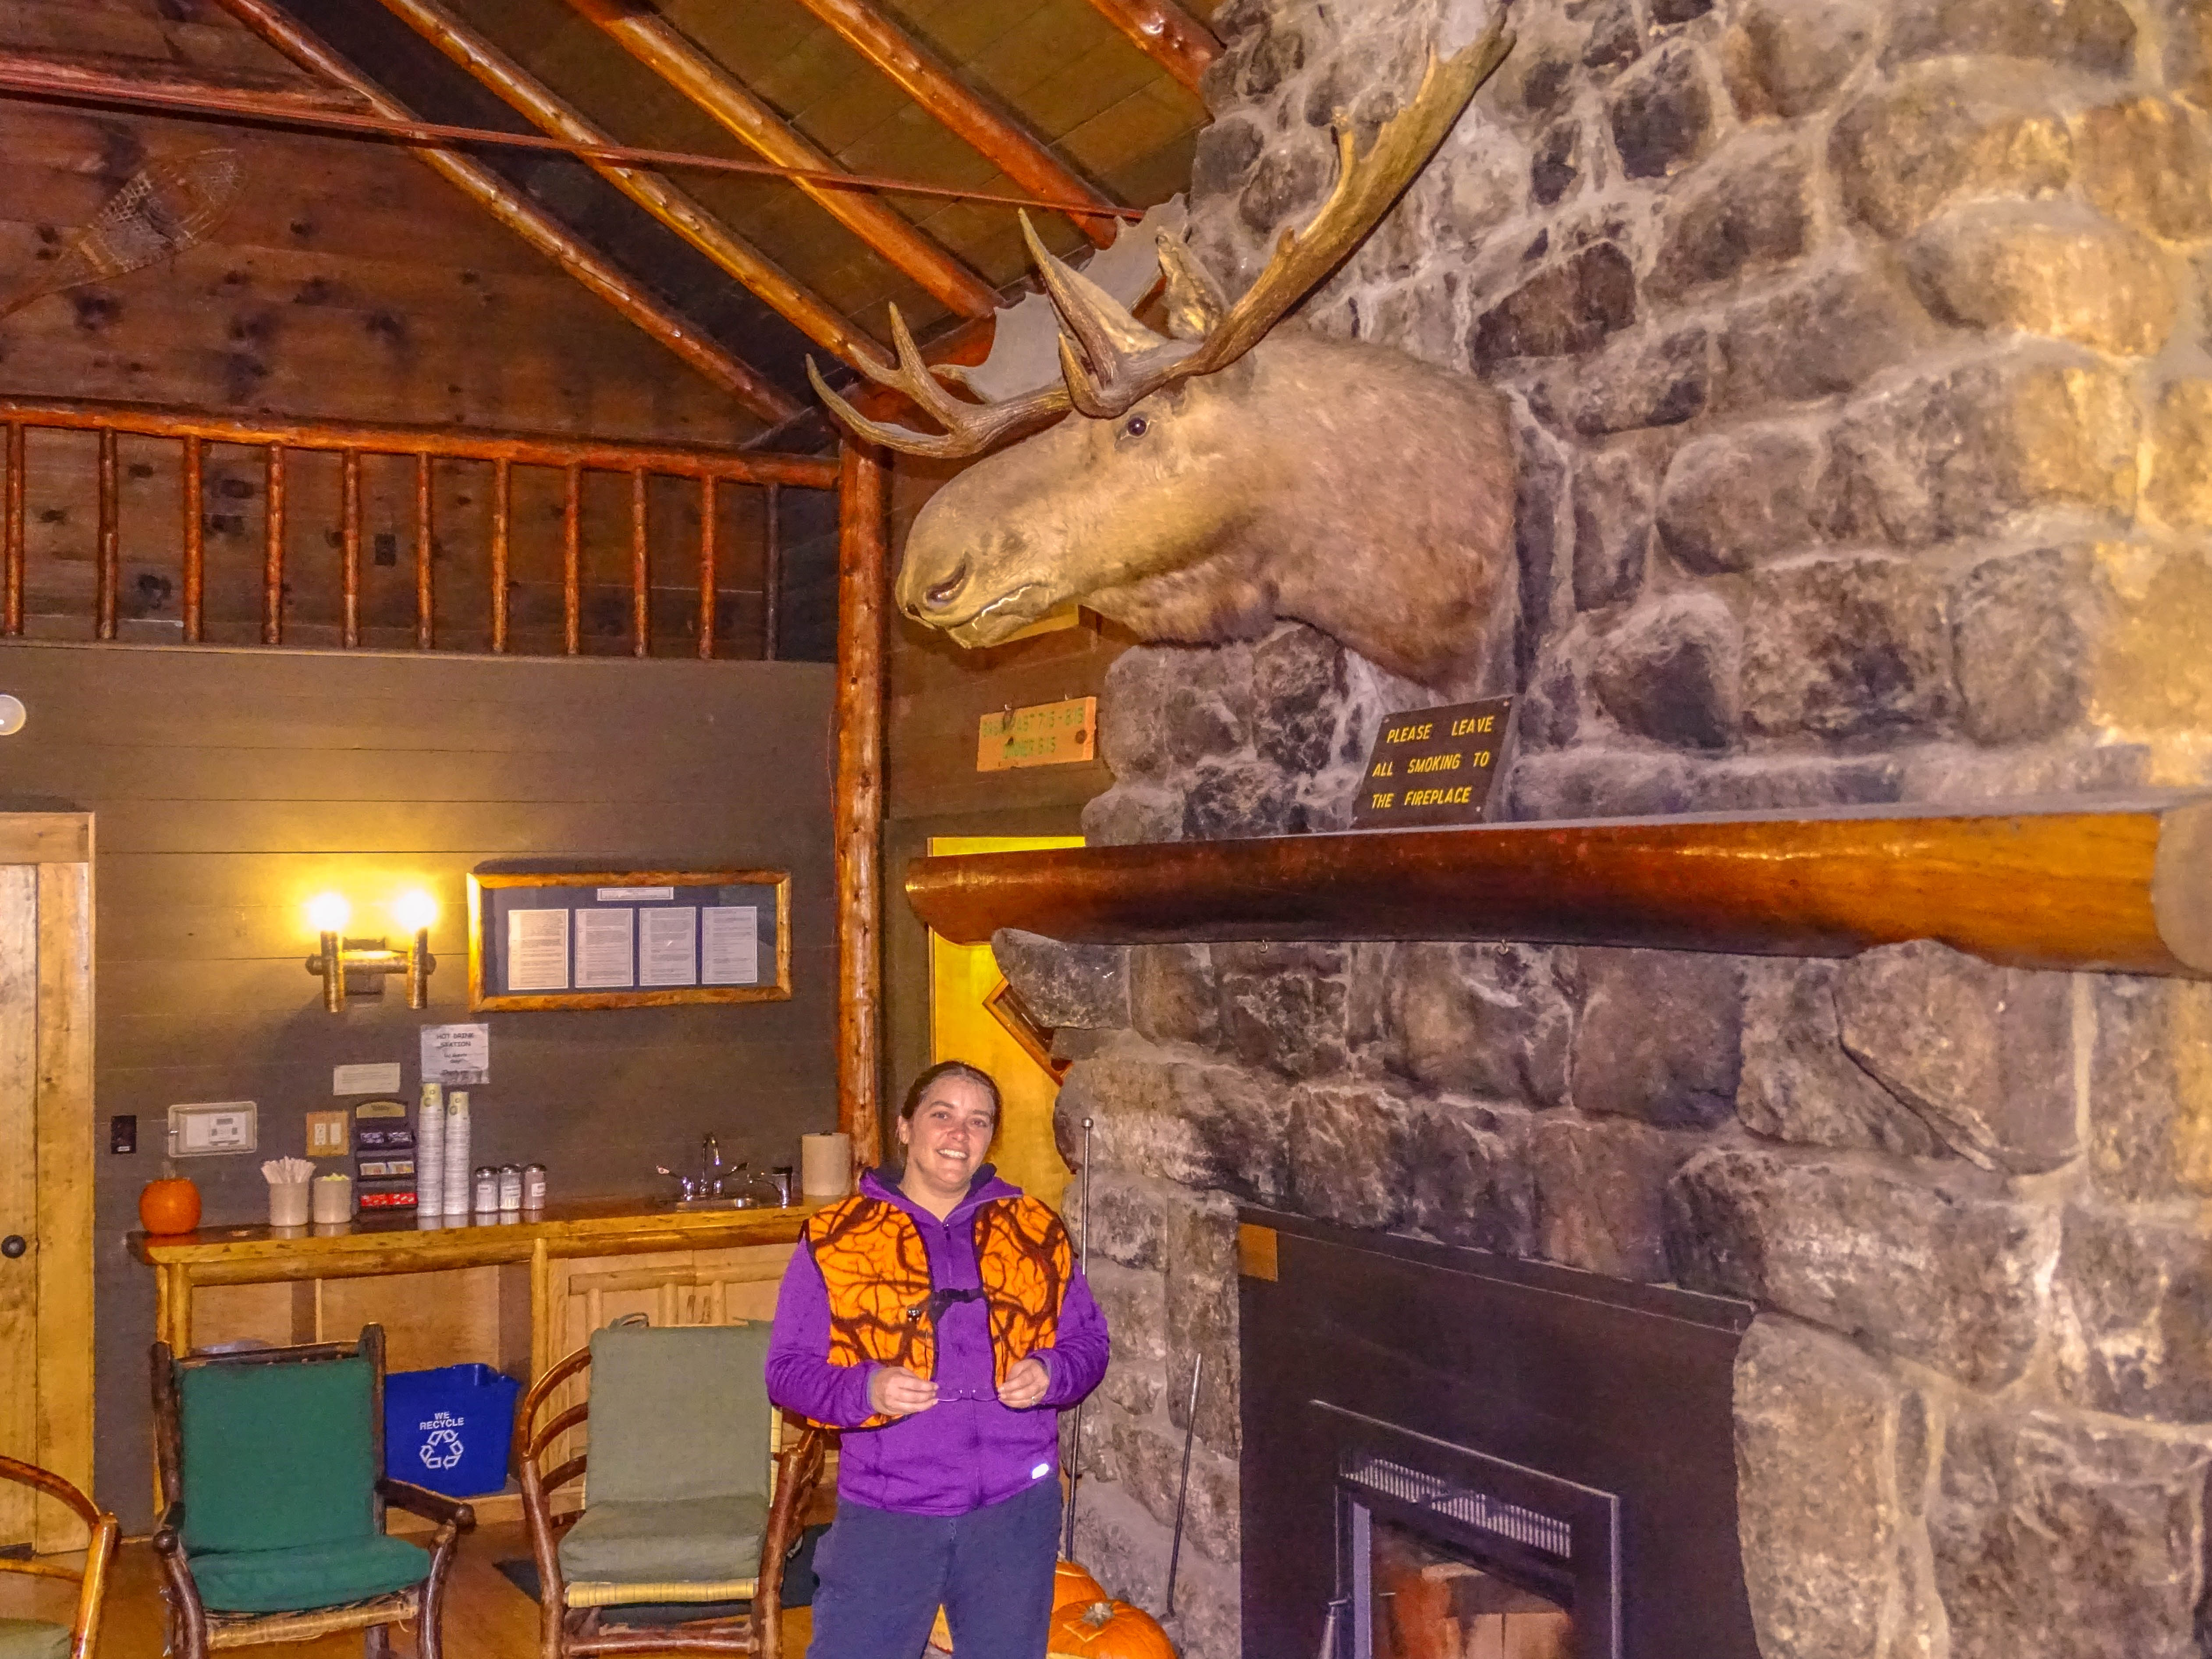 Me by the fire in the Great Room of the Adirondack Loj in Lake Placid, NY, Adirondacks